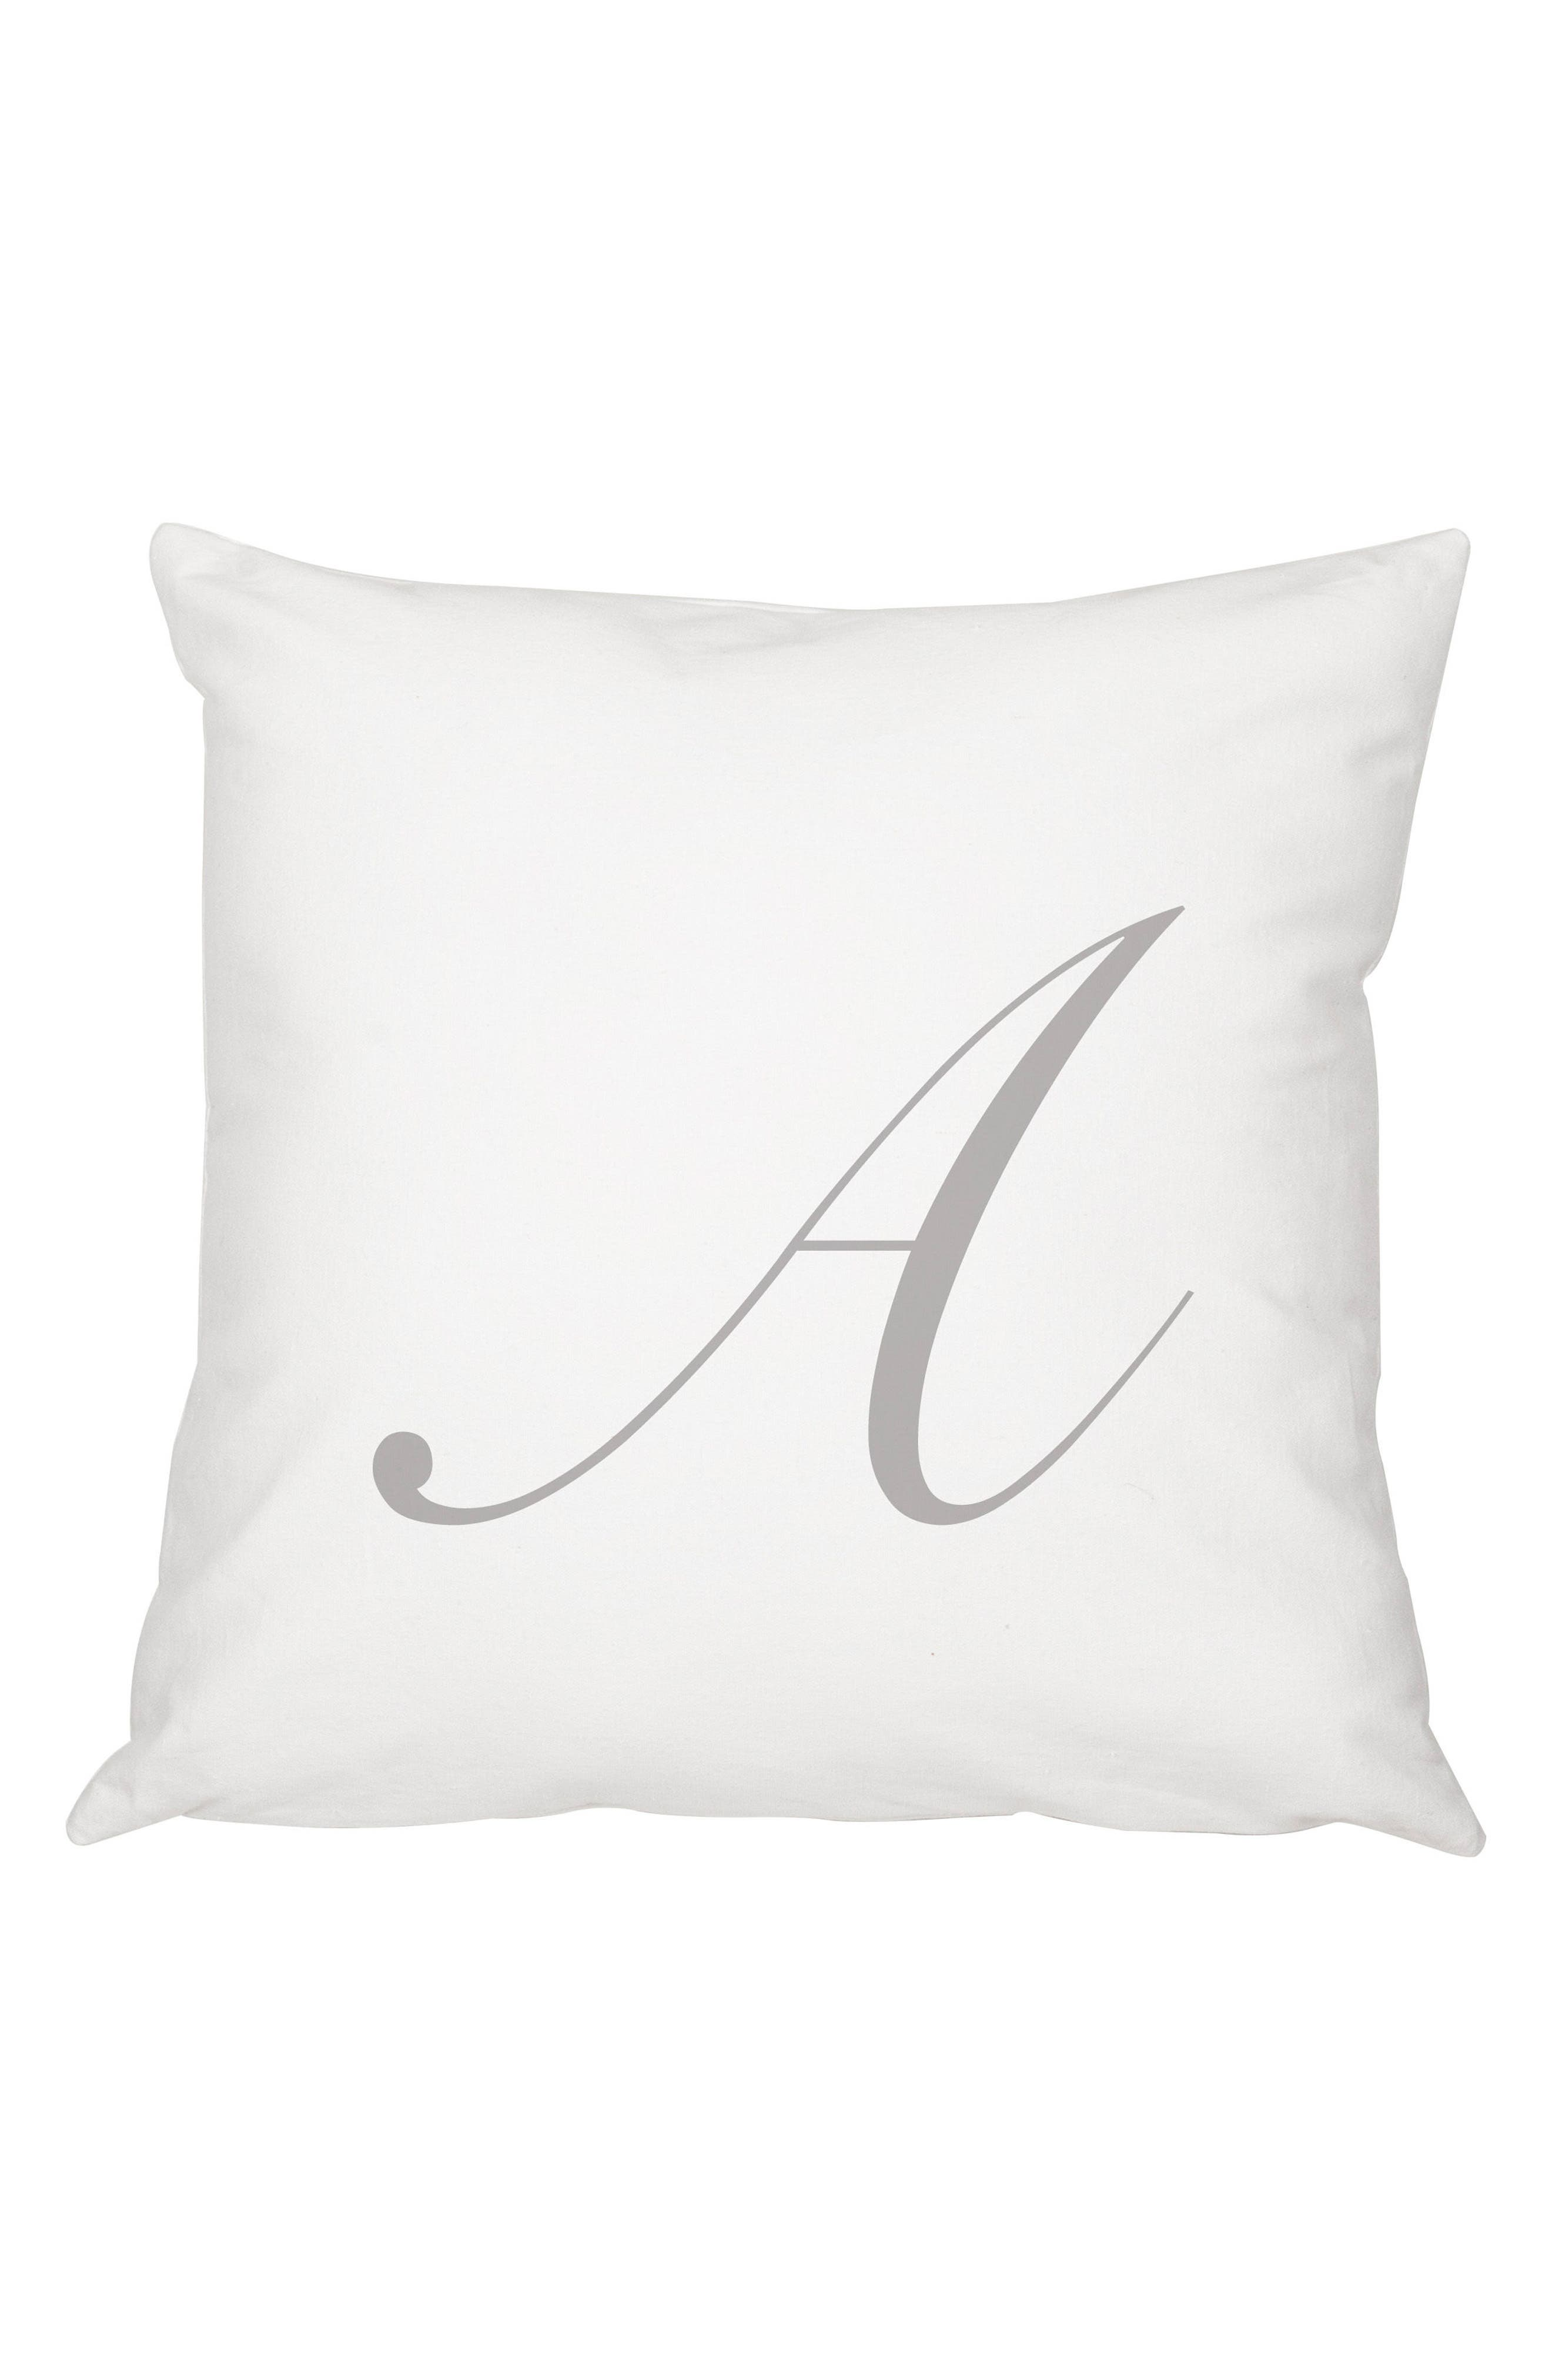 Script Monogram Accent Pillow,                             Main thumbnail 1, color,                             020